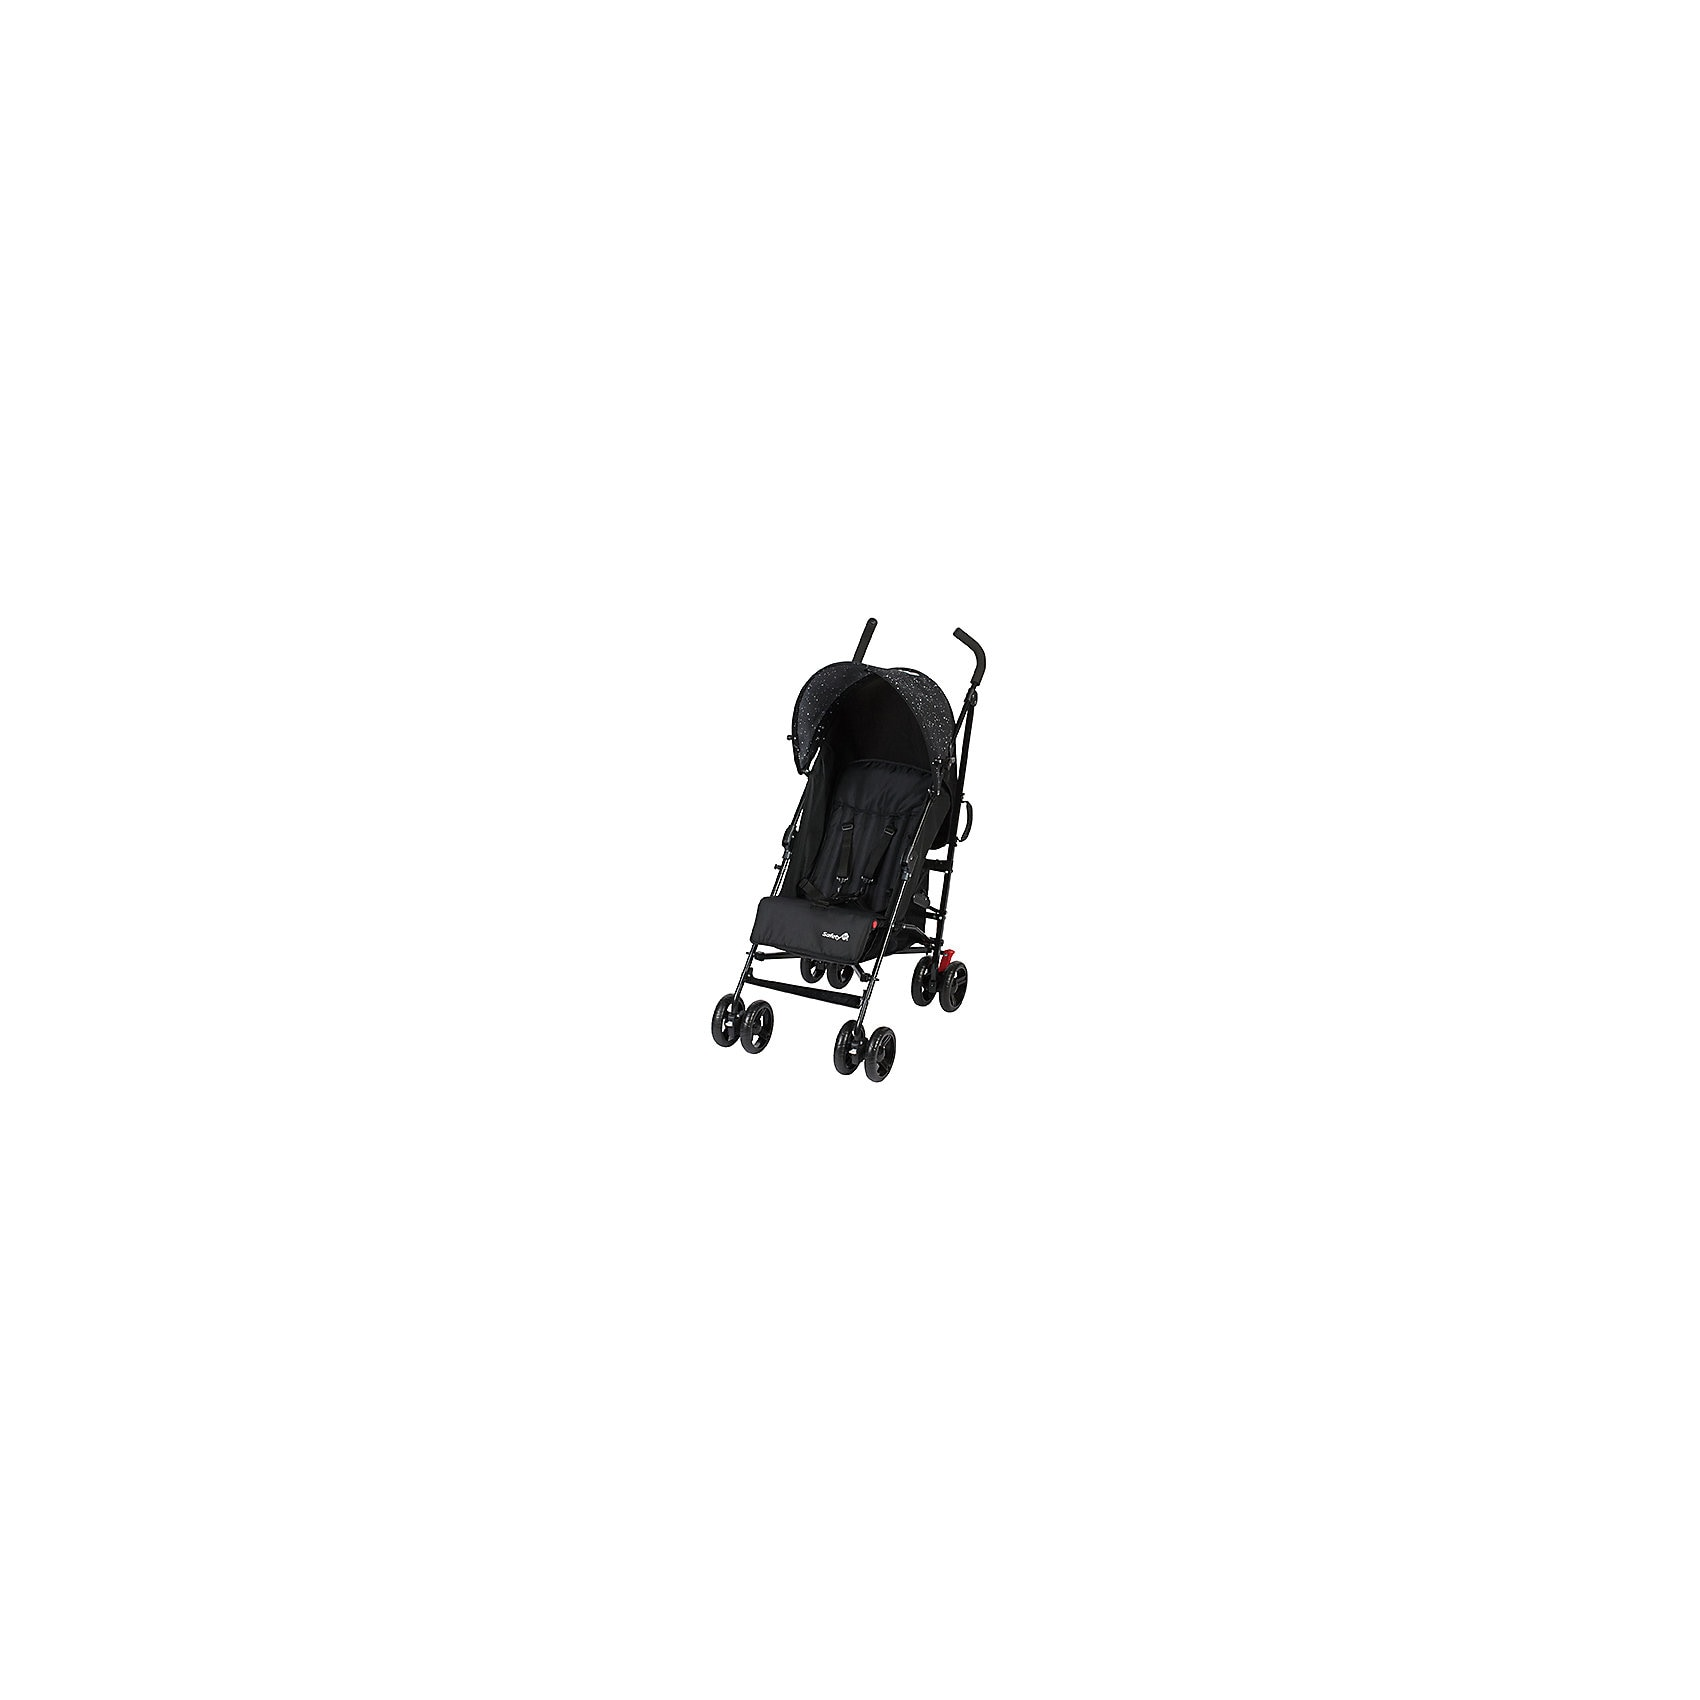 Safety 1st Buggy Slim Splatter Black 2018